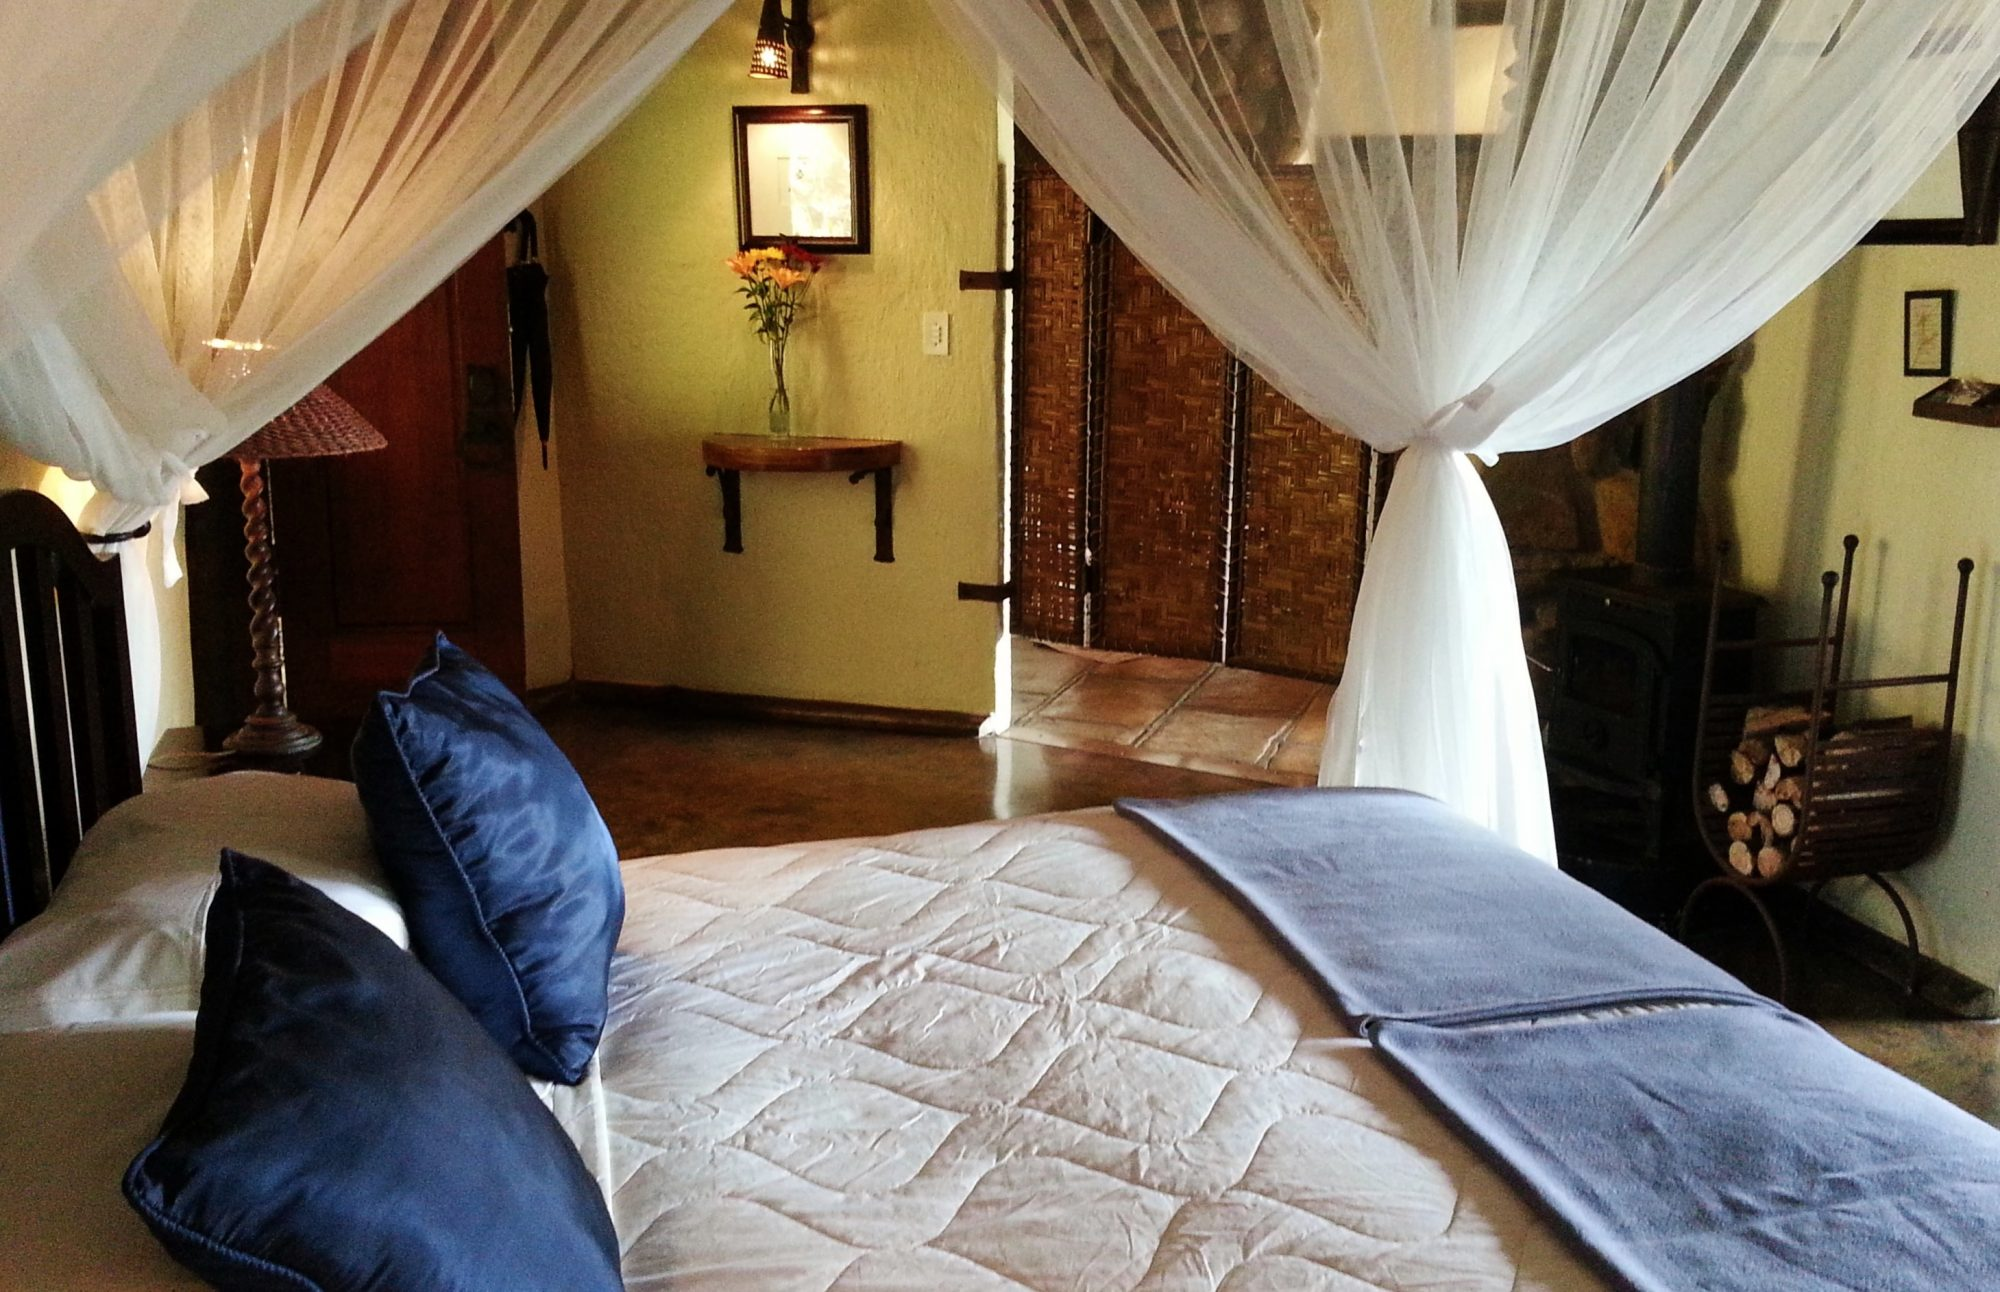 Tanamera Lodge, Hazyview, Mpumalanga (5)